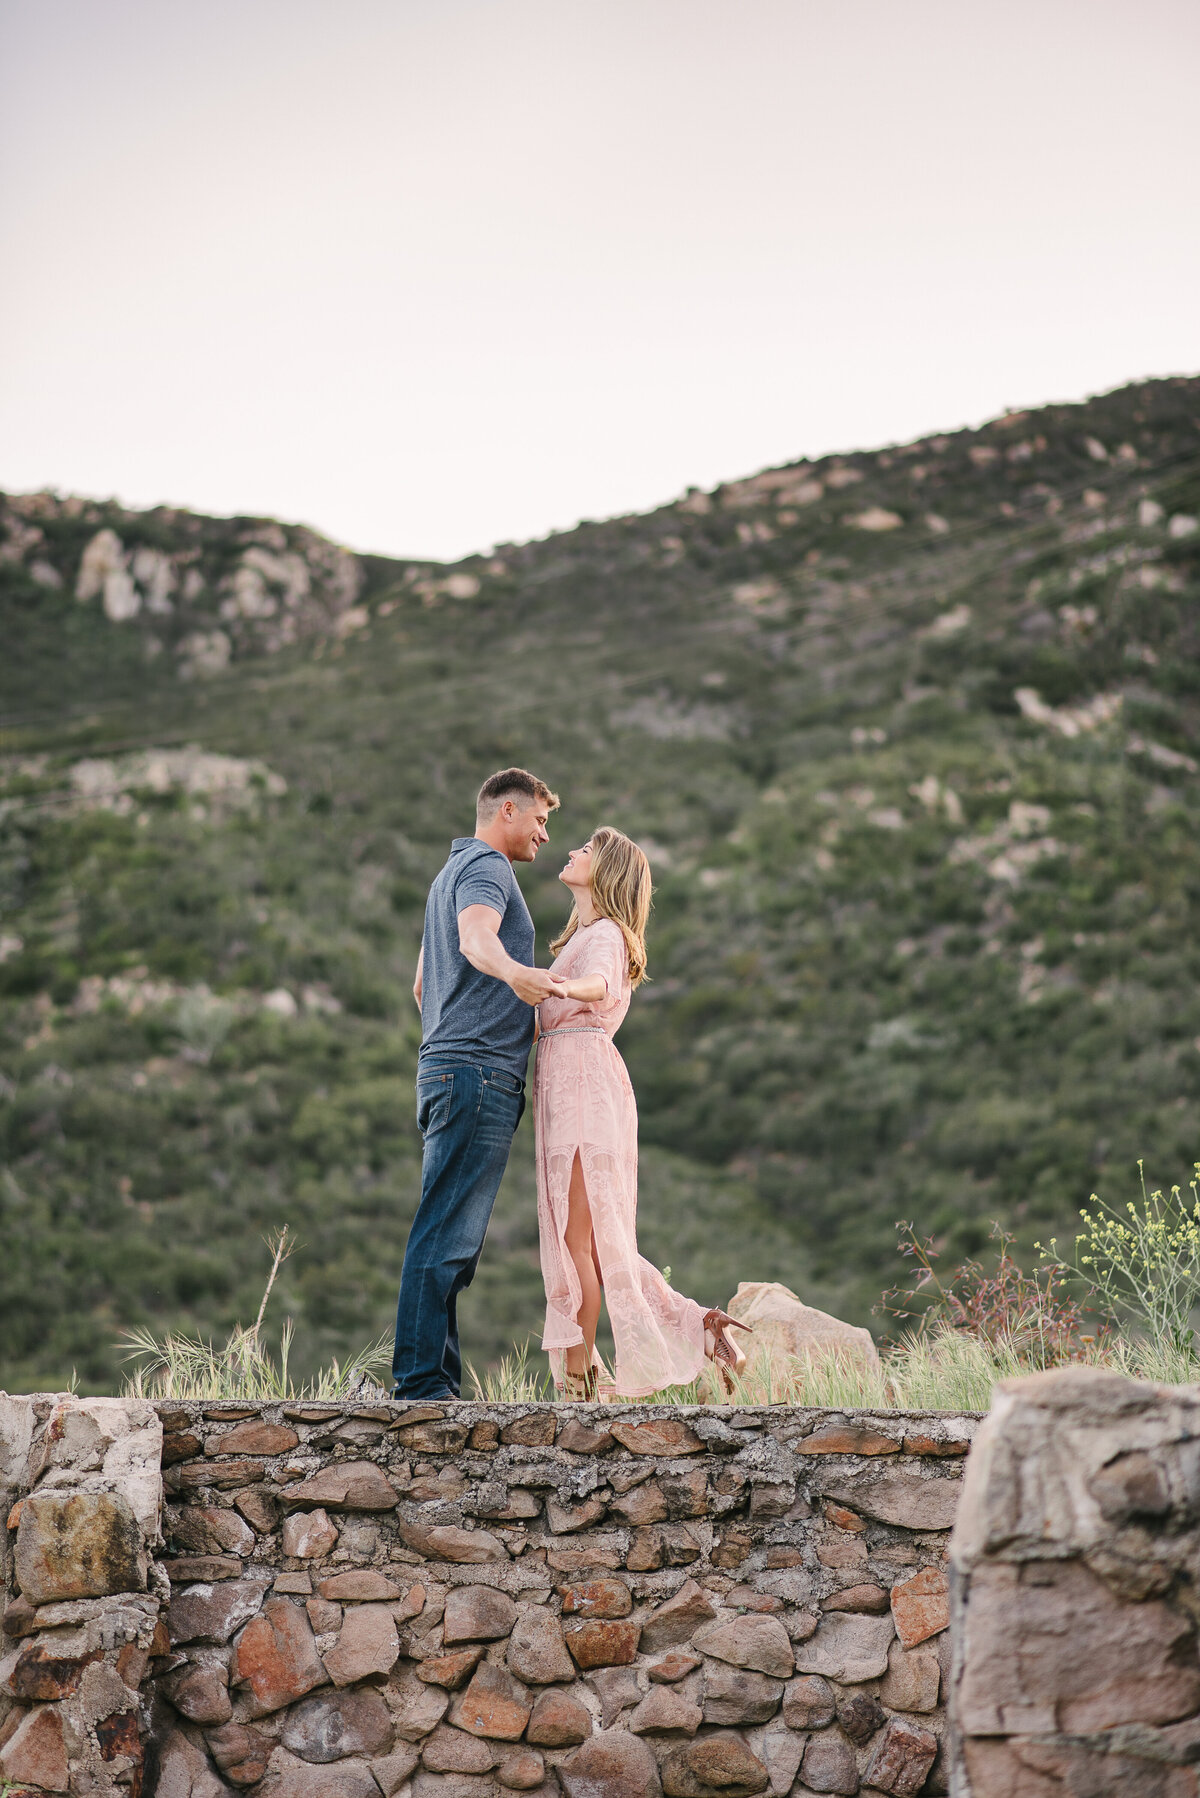 2018-04-17 Misty + Stephan Engaged-82